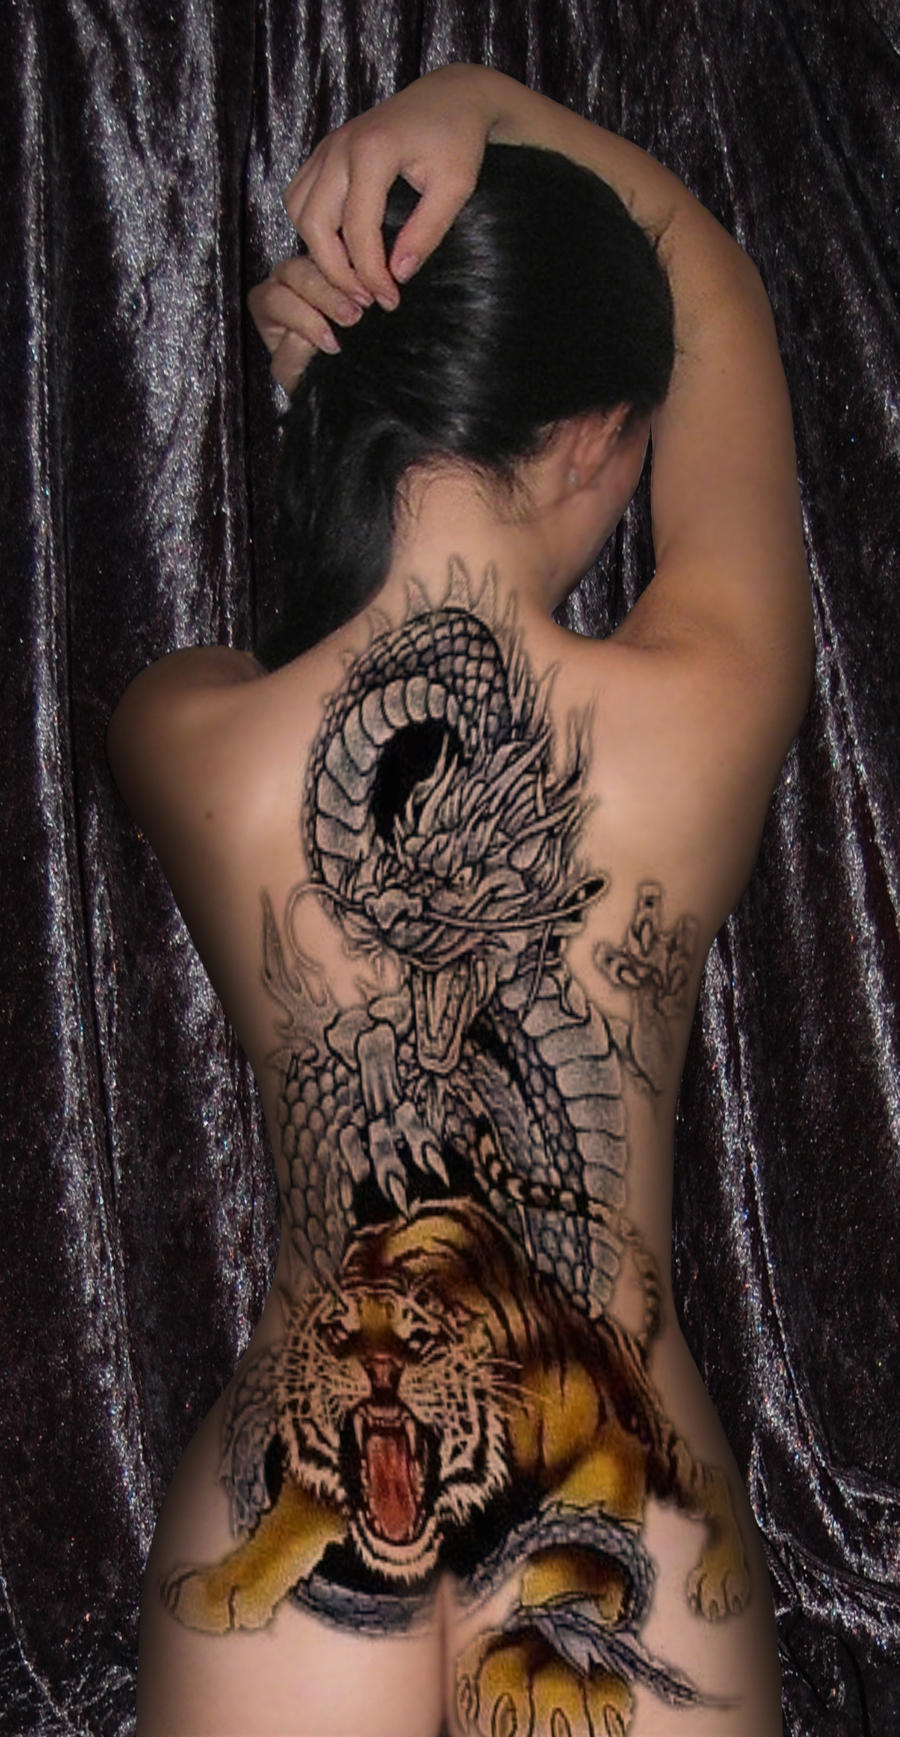 Tattoo Dragon and Tiger by